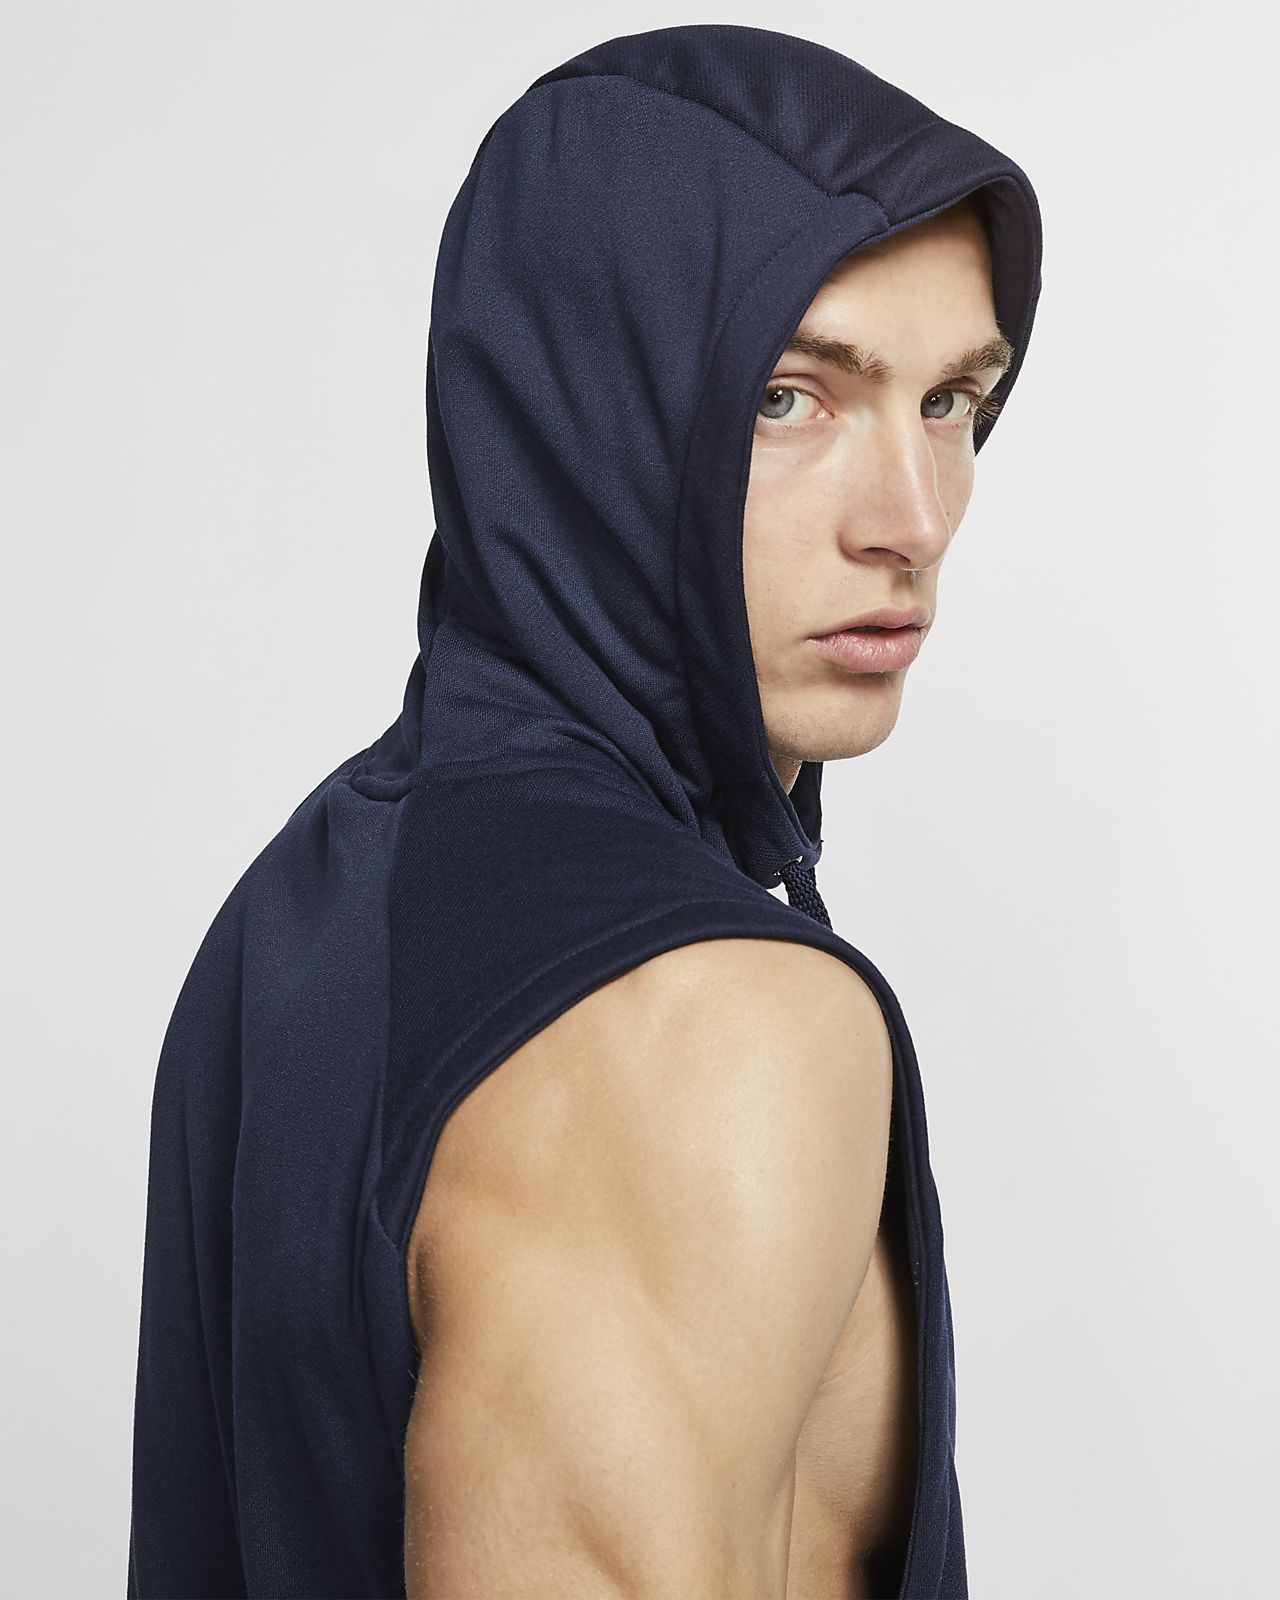 e3f43fefa556c Nike Dri-FIT Men s Sleeveless Training Hoodie. Nike.com